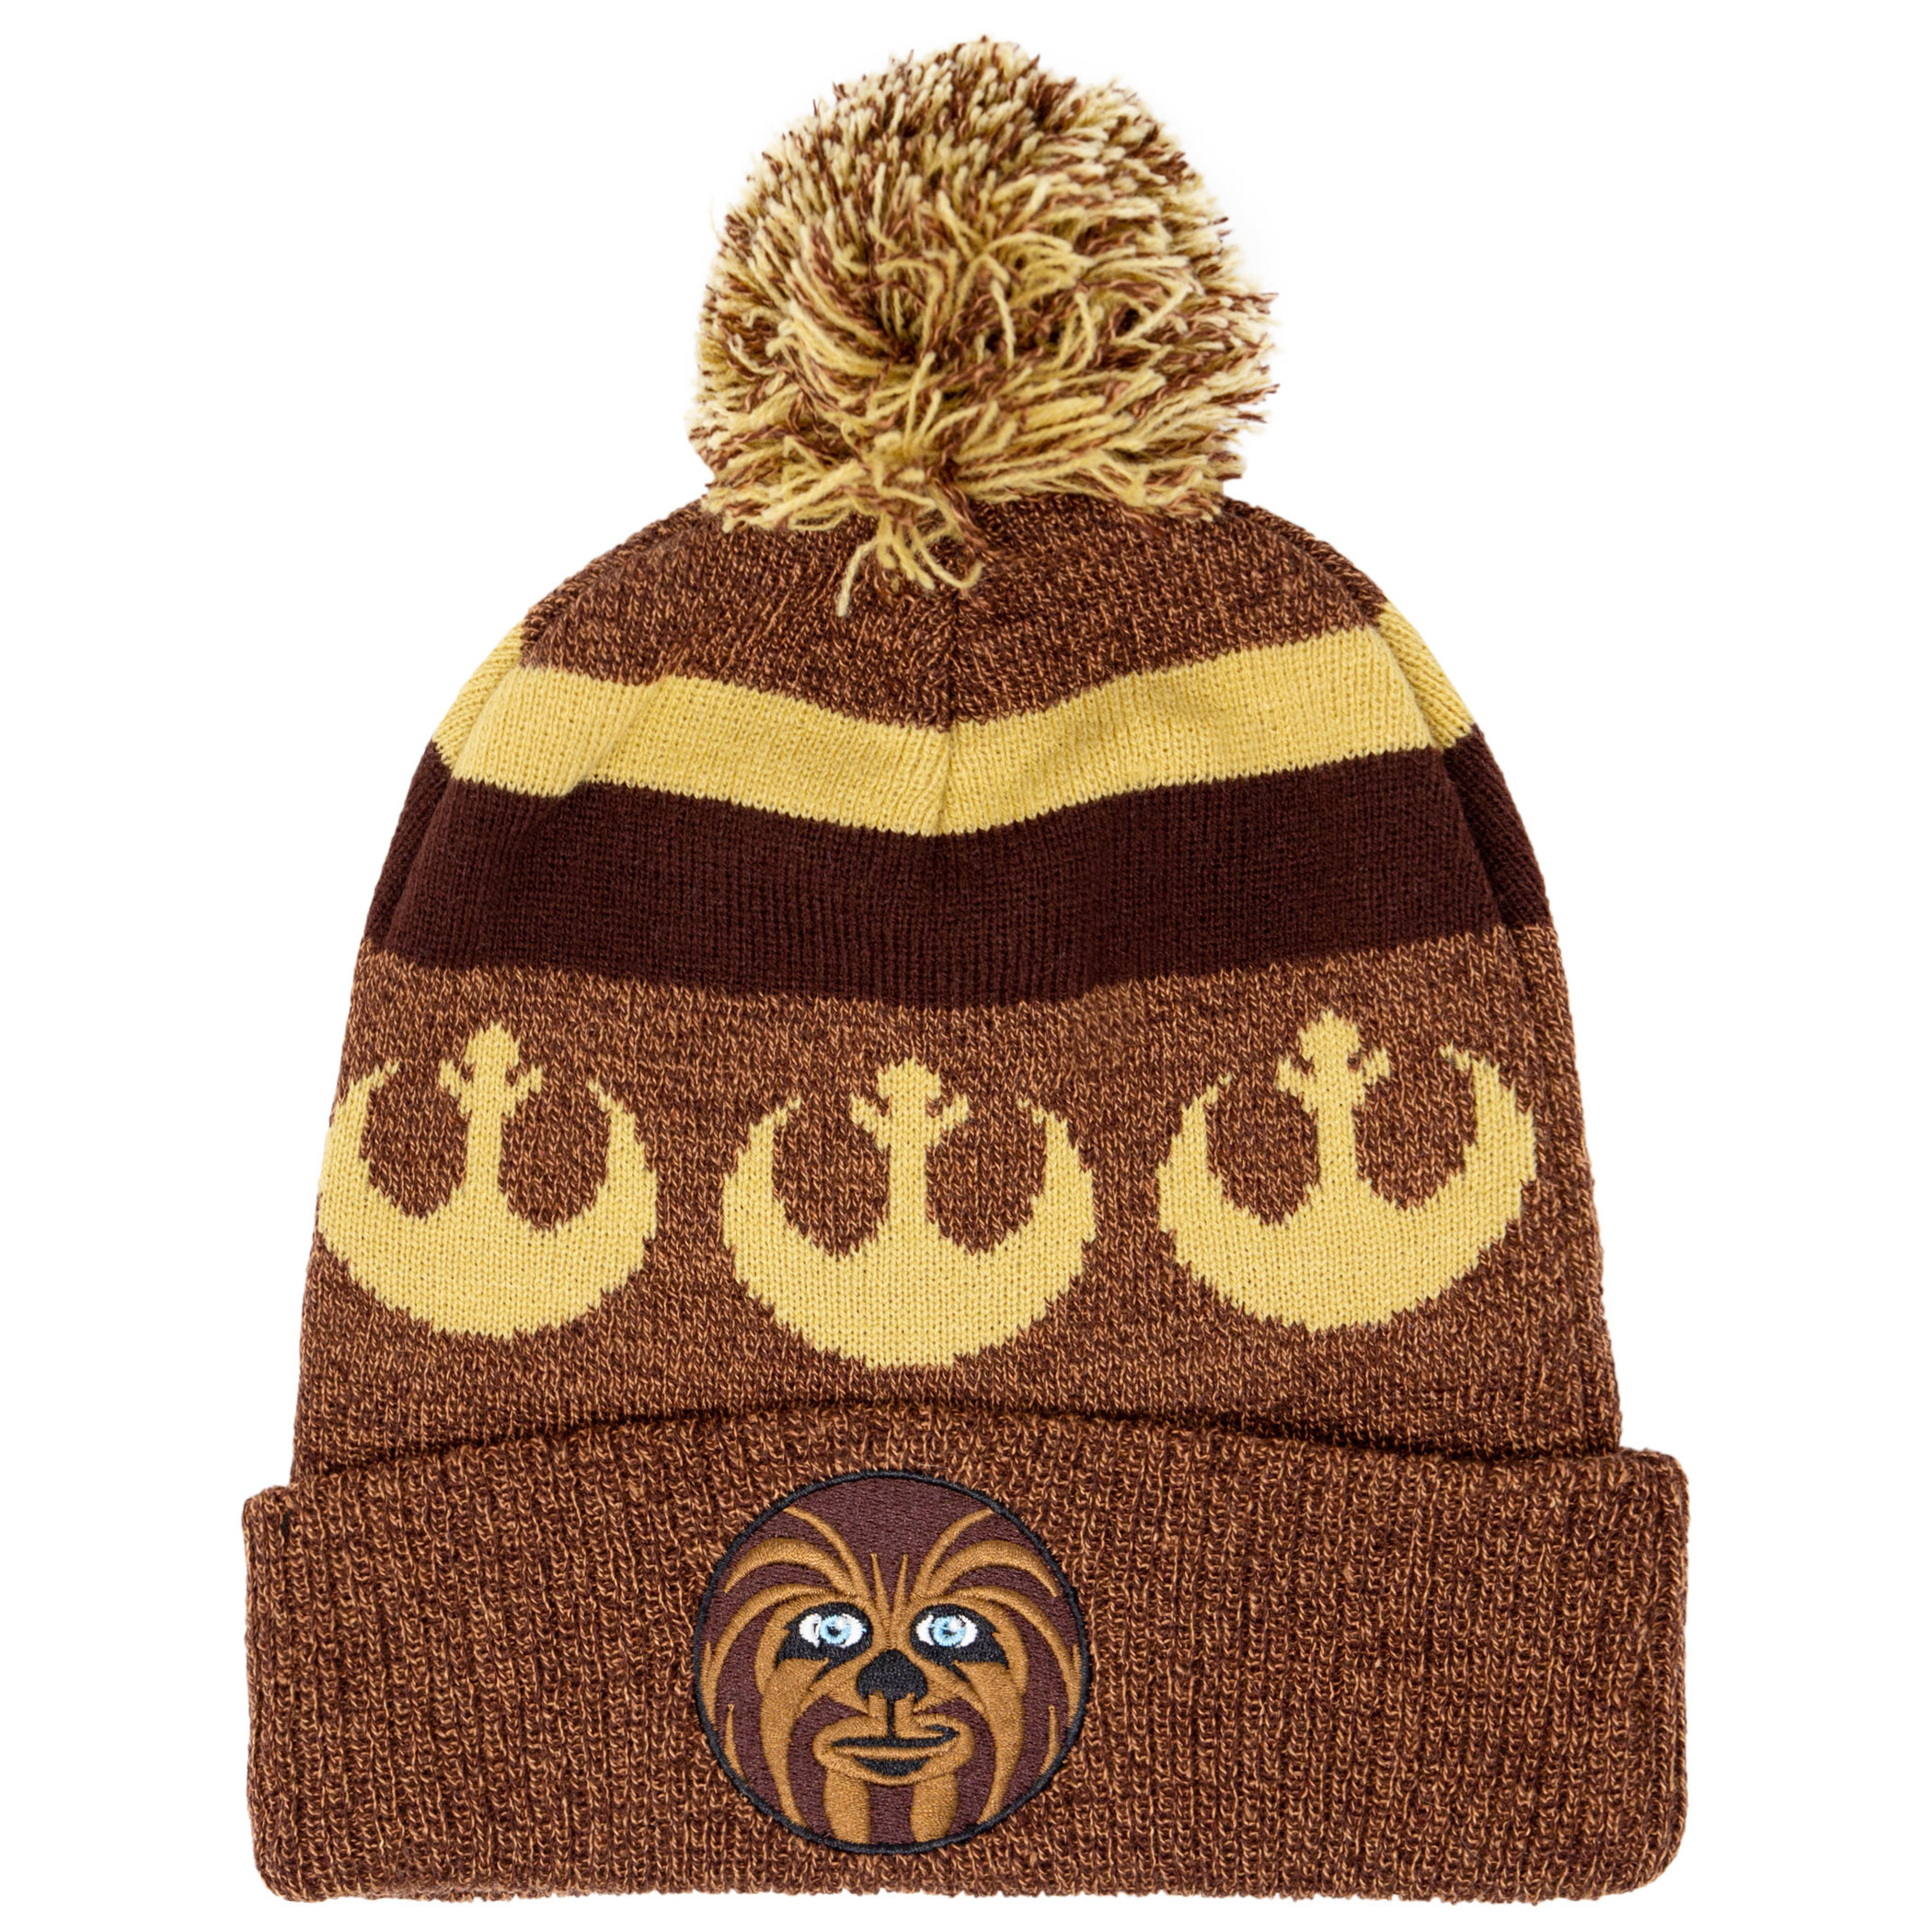 Star Wars Chewbacca Rebel Cuff Pom Beanie